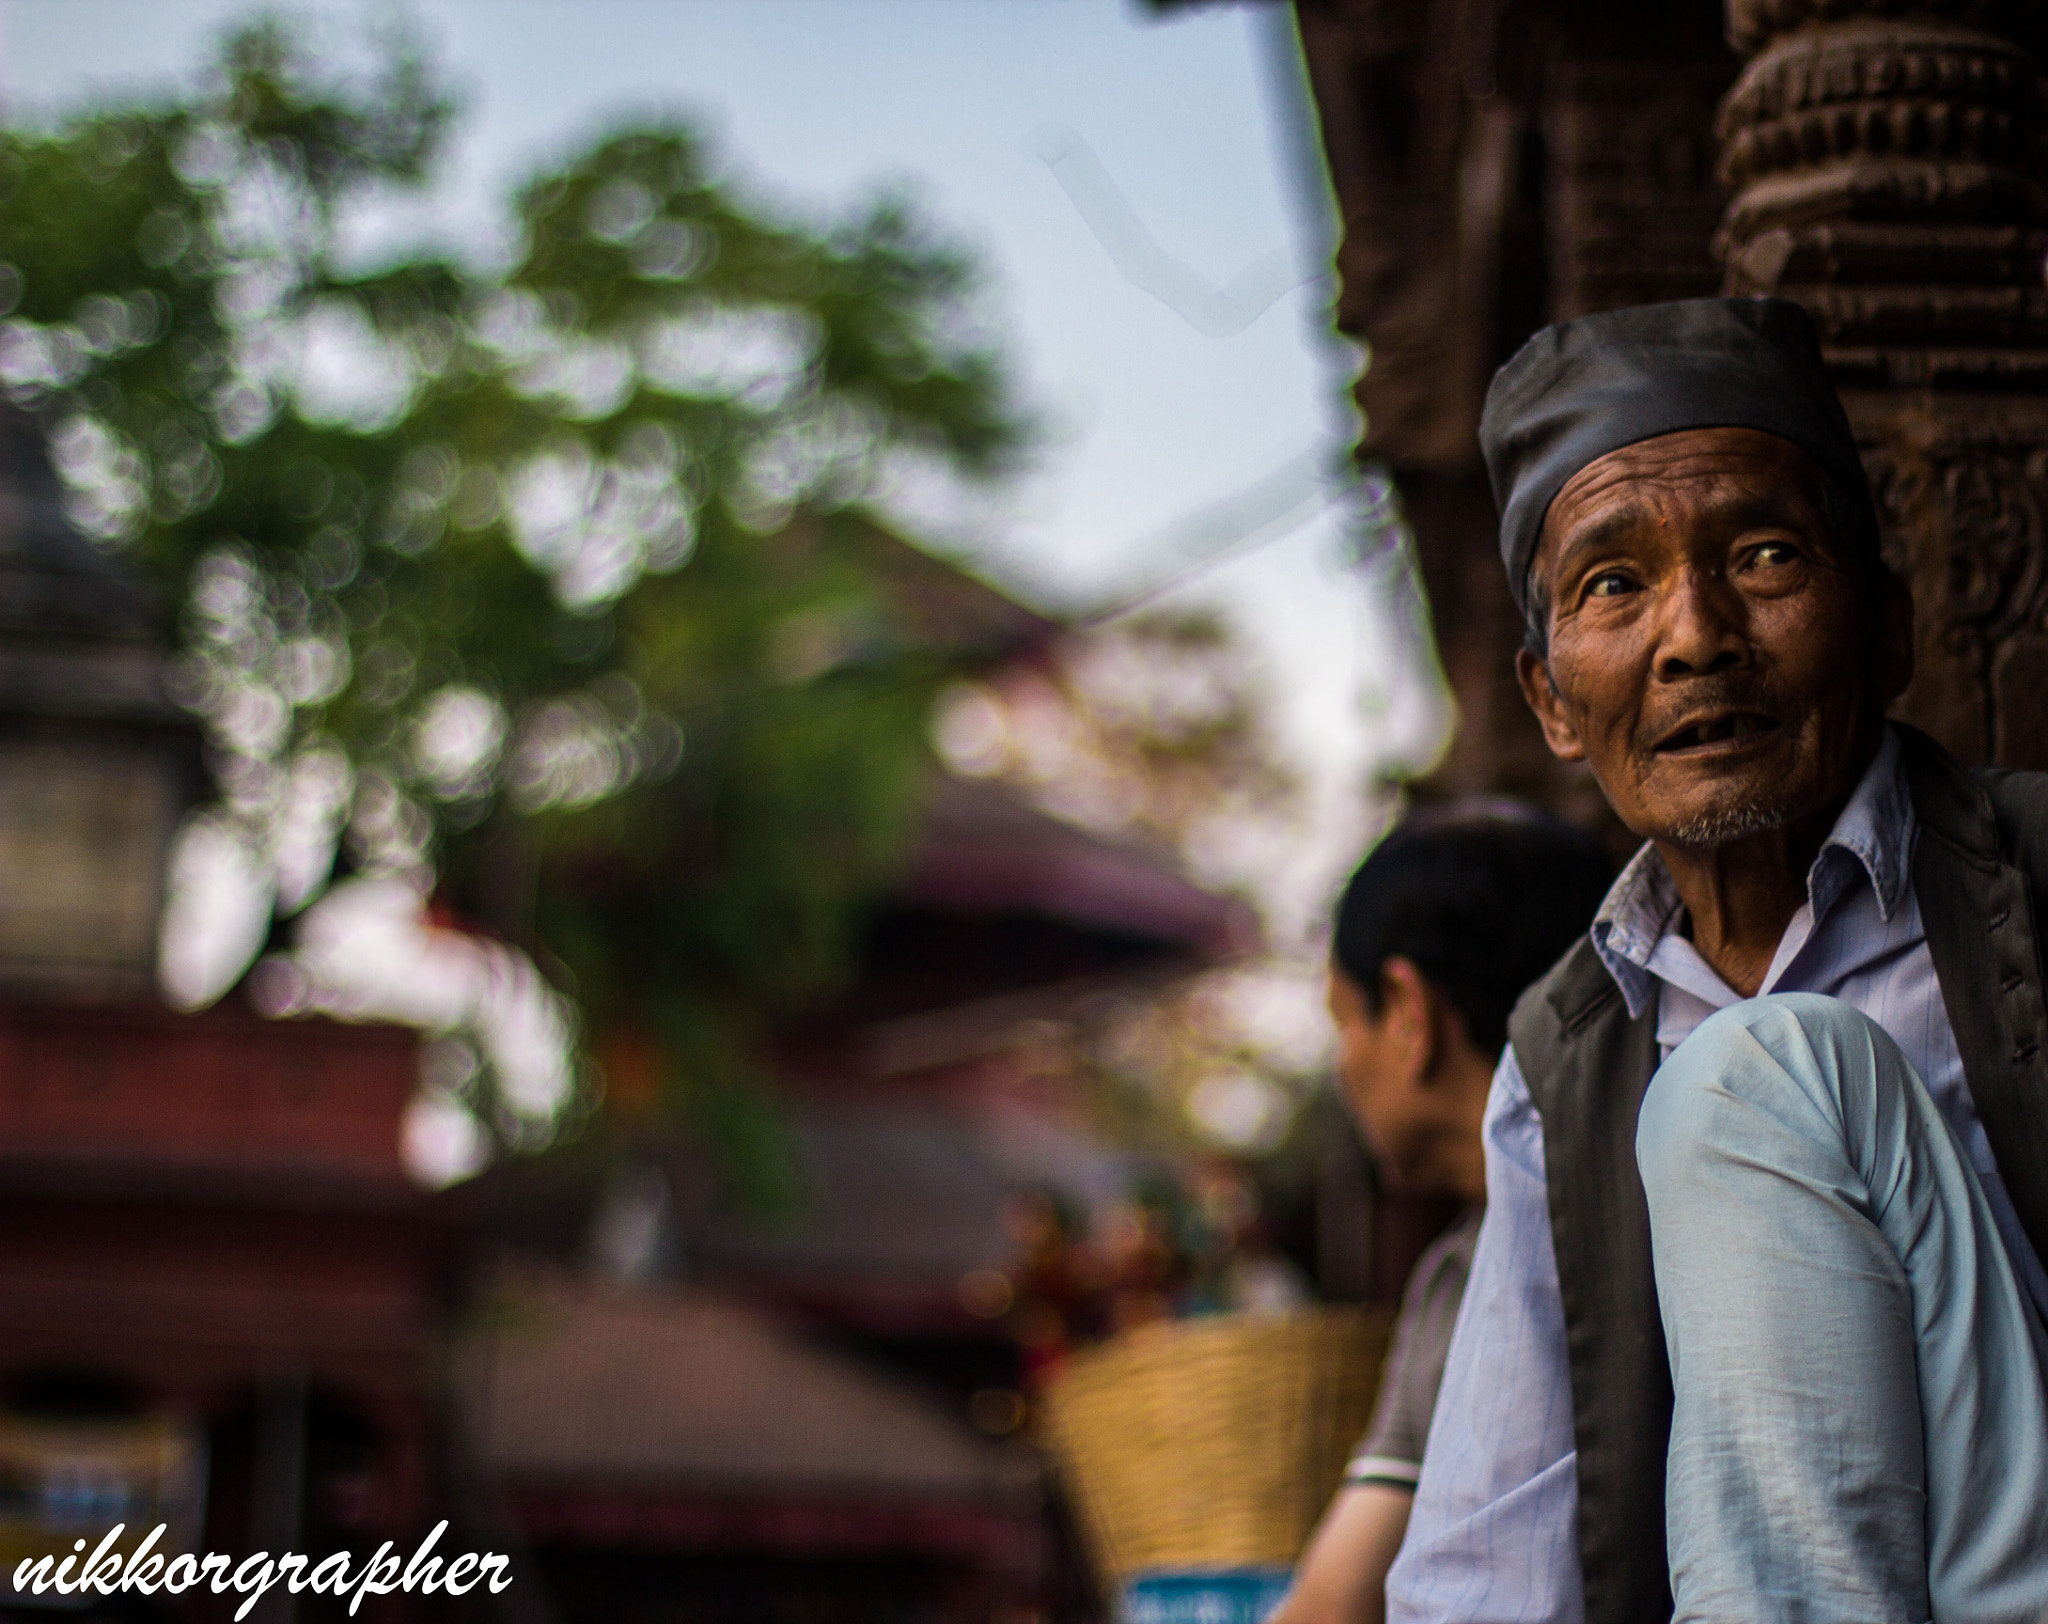 Photograph Old Man by Nikkorgraphy (Udhab) on 500px